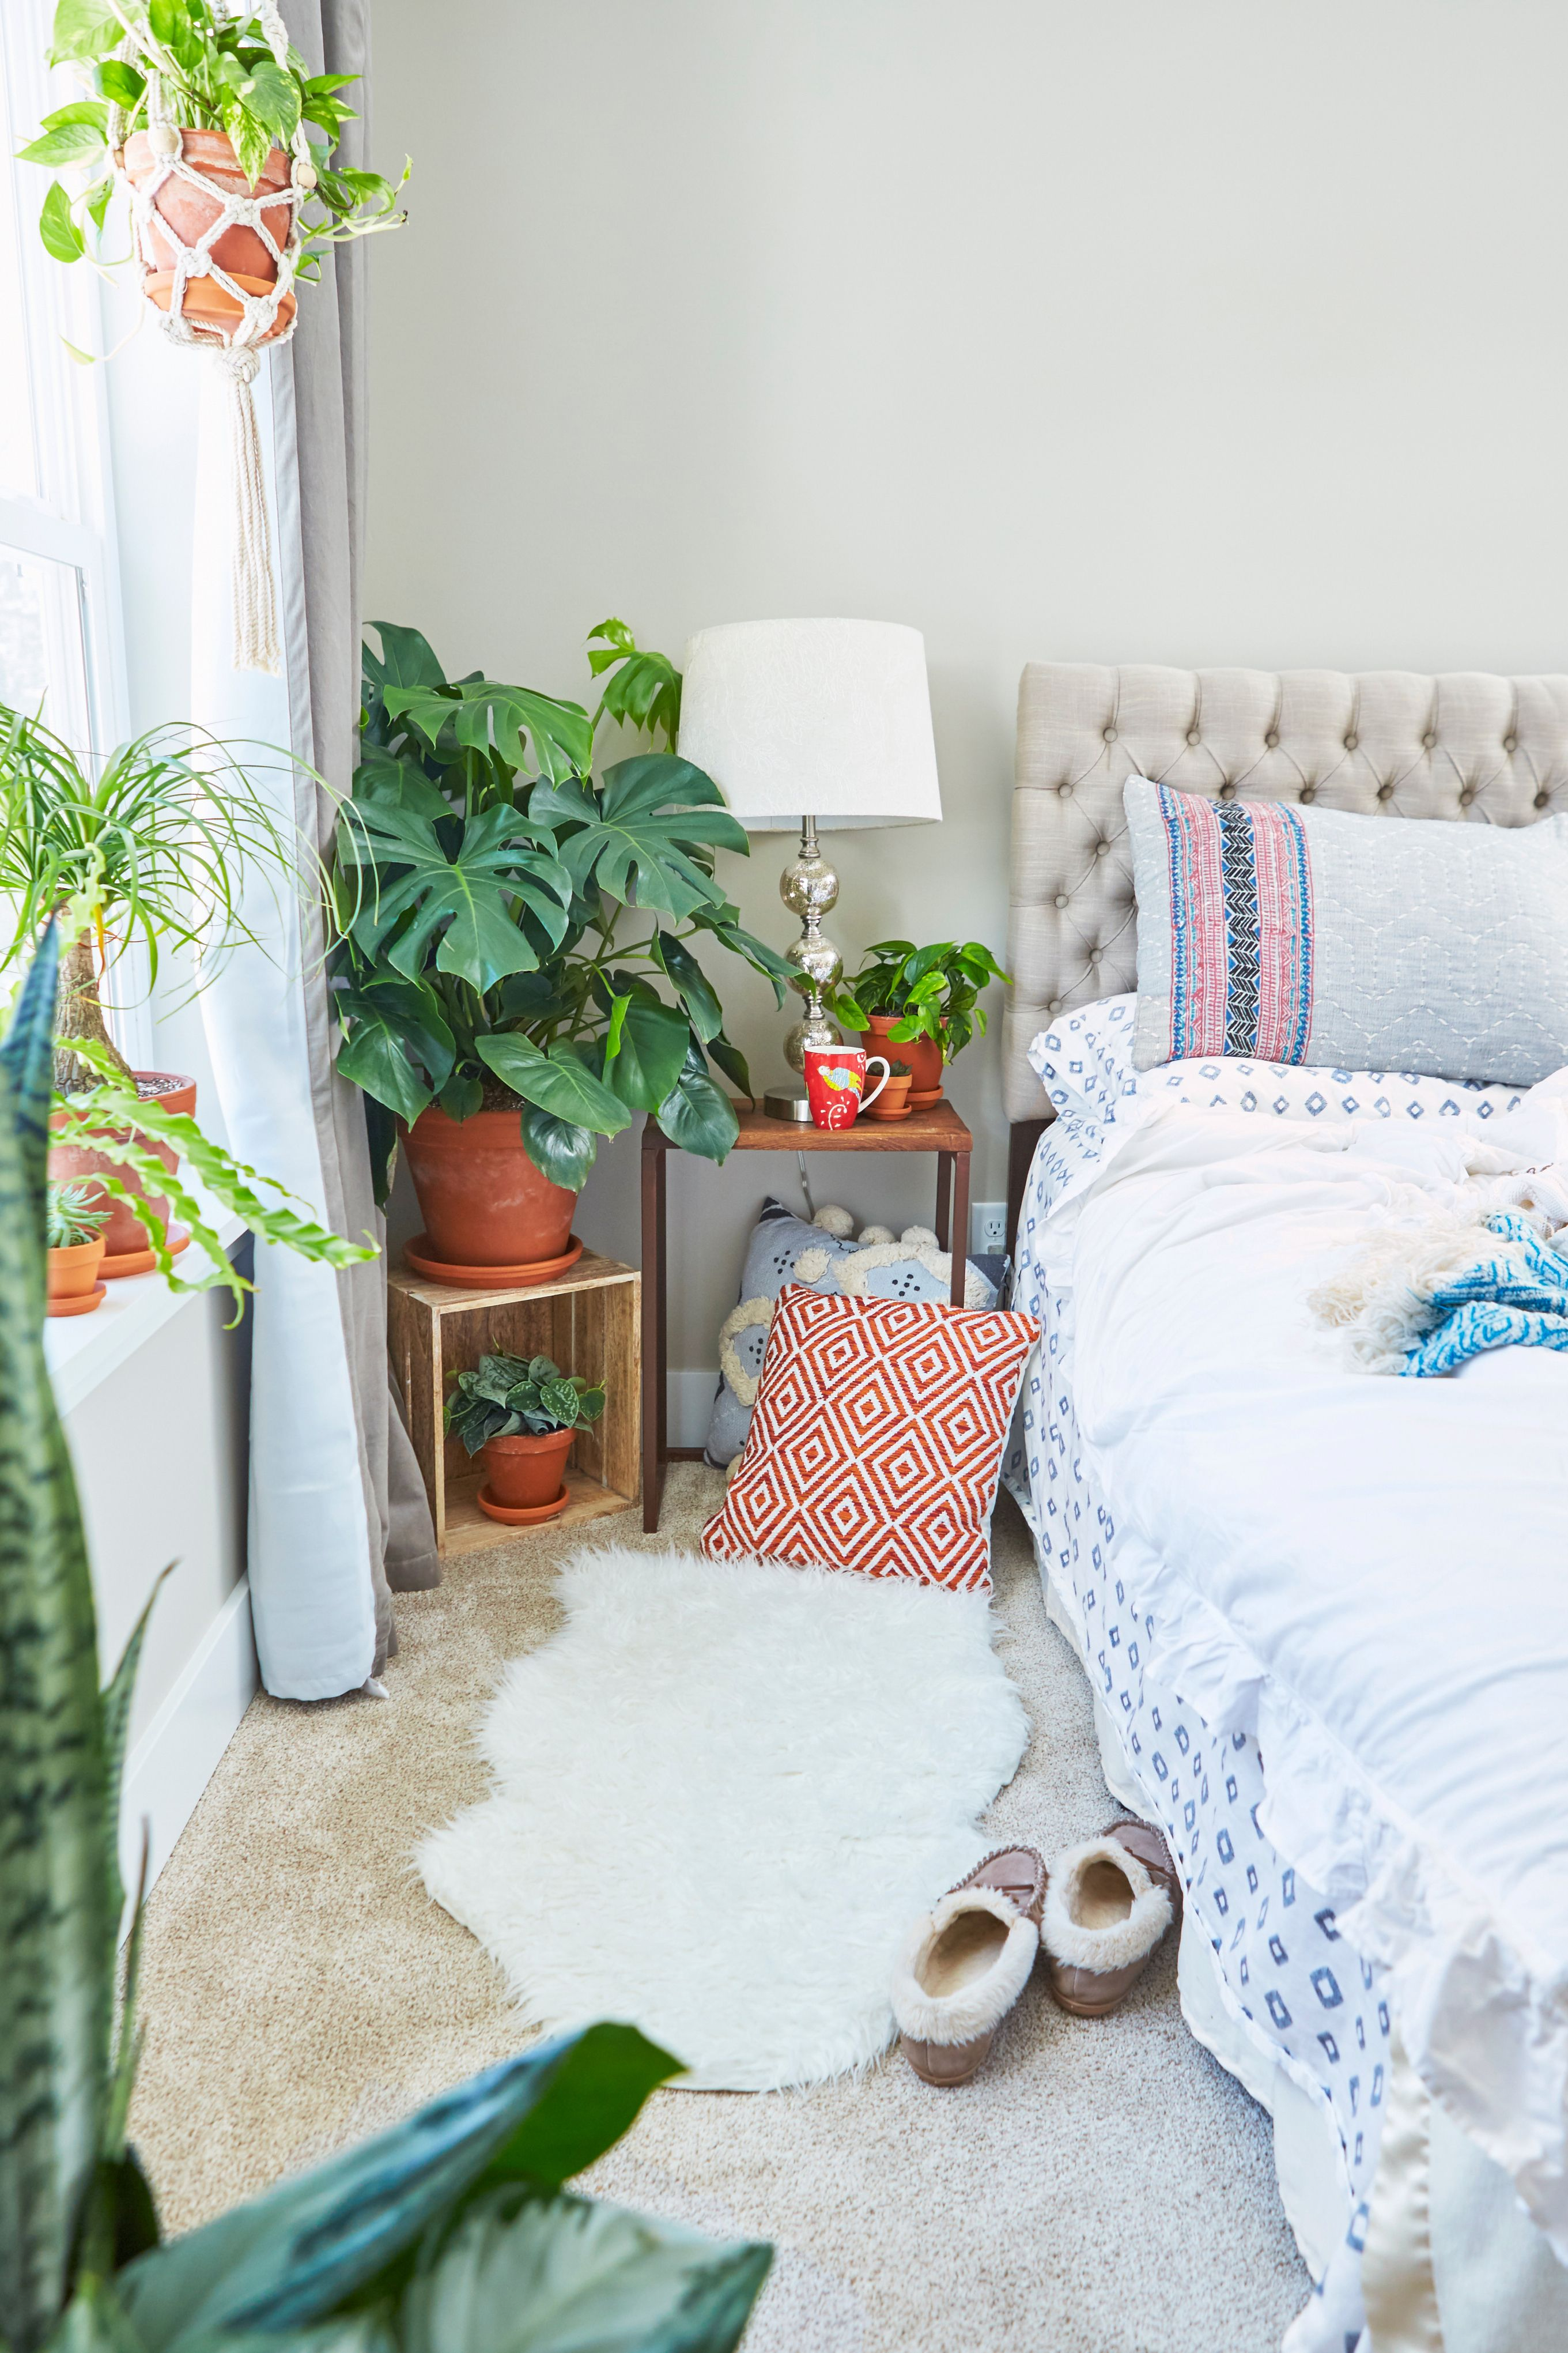 Plants make a big difference in a neutral bedroom. Place a